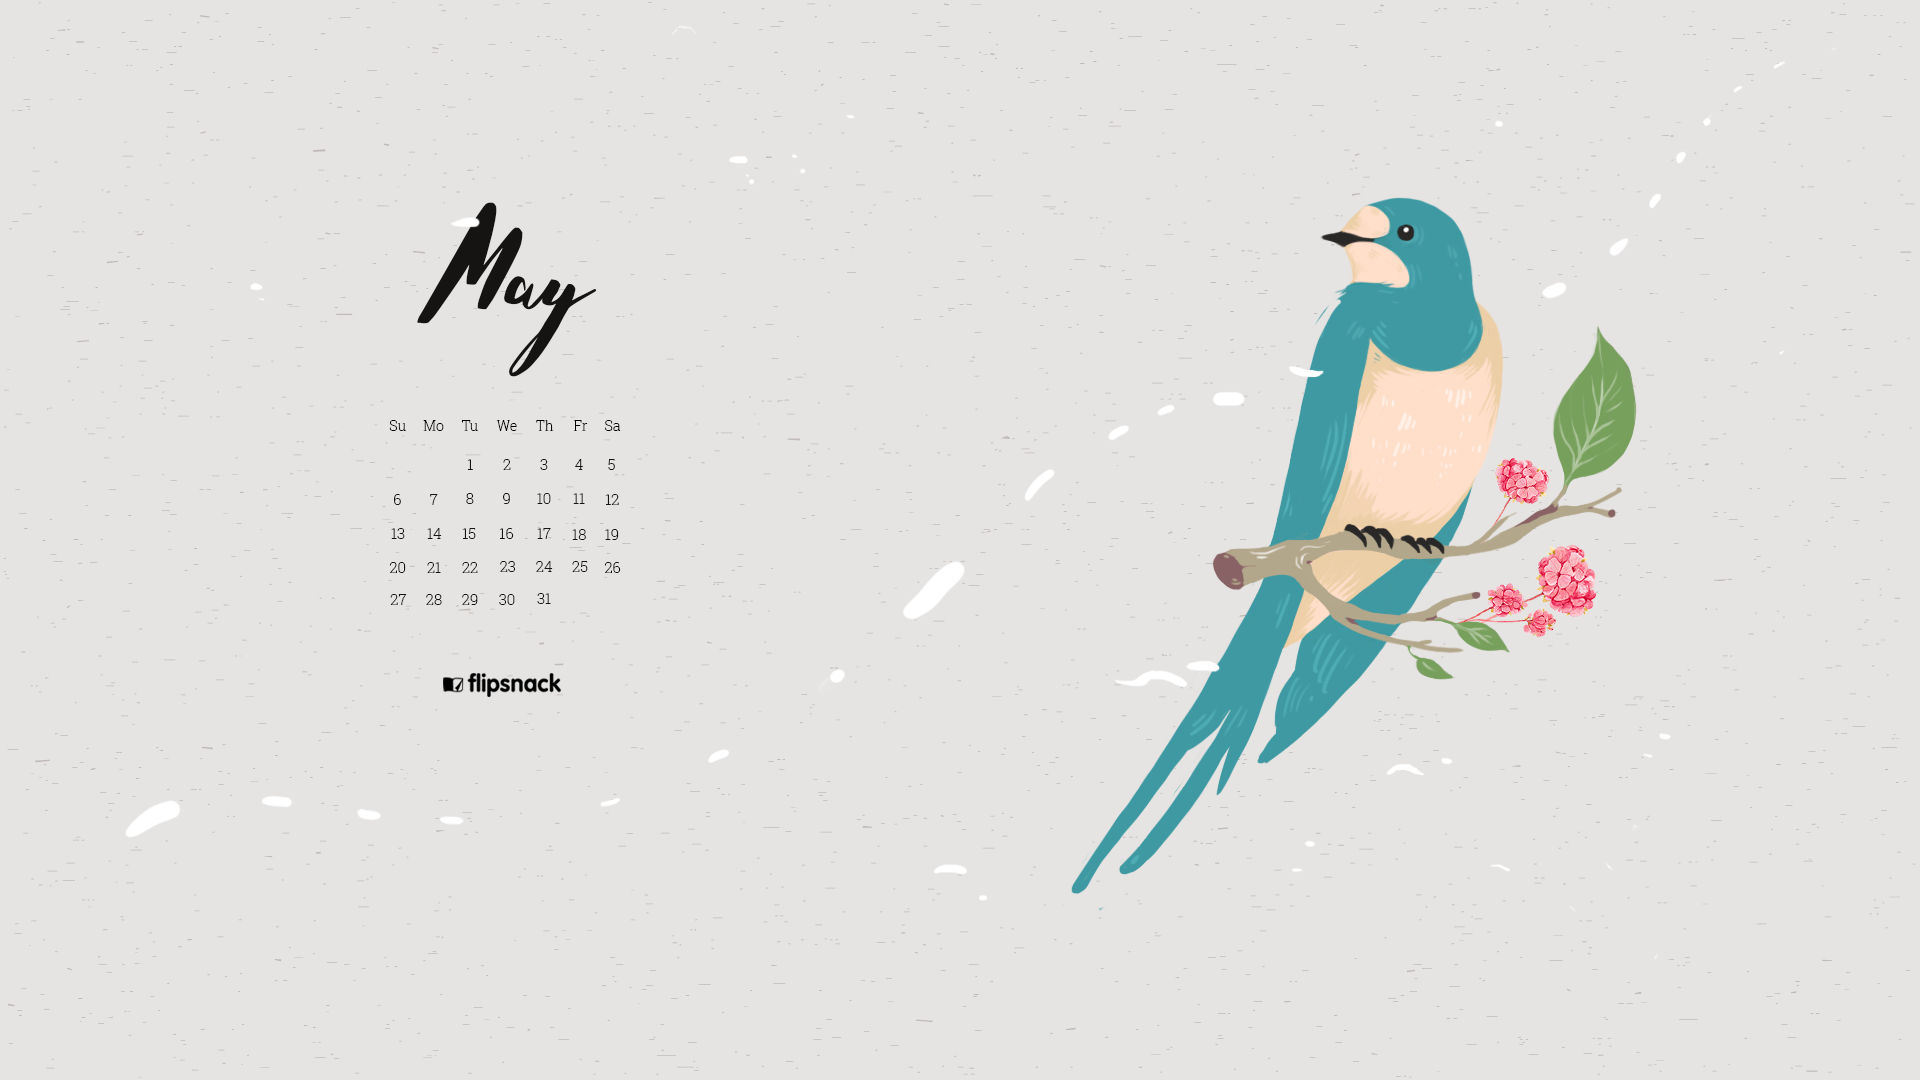 May 2018 calendar wallpaper for desktop smartphone 1920x1080